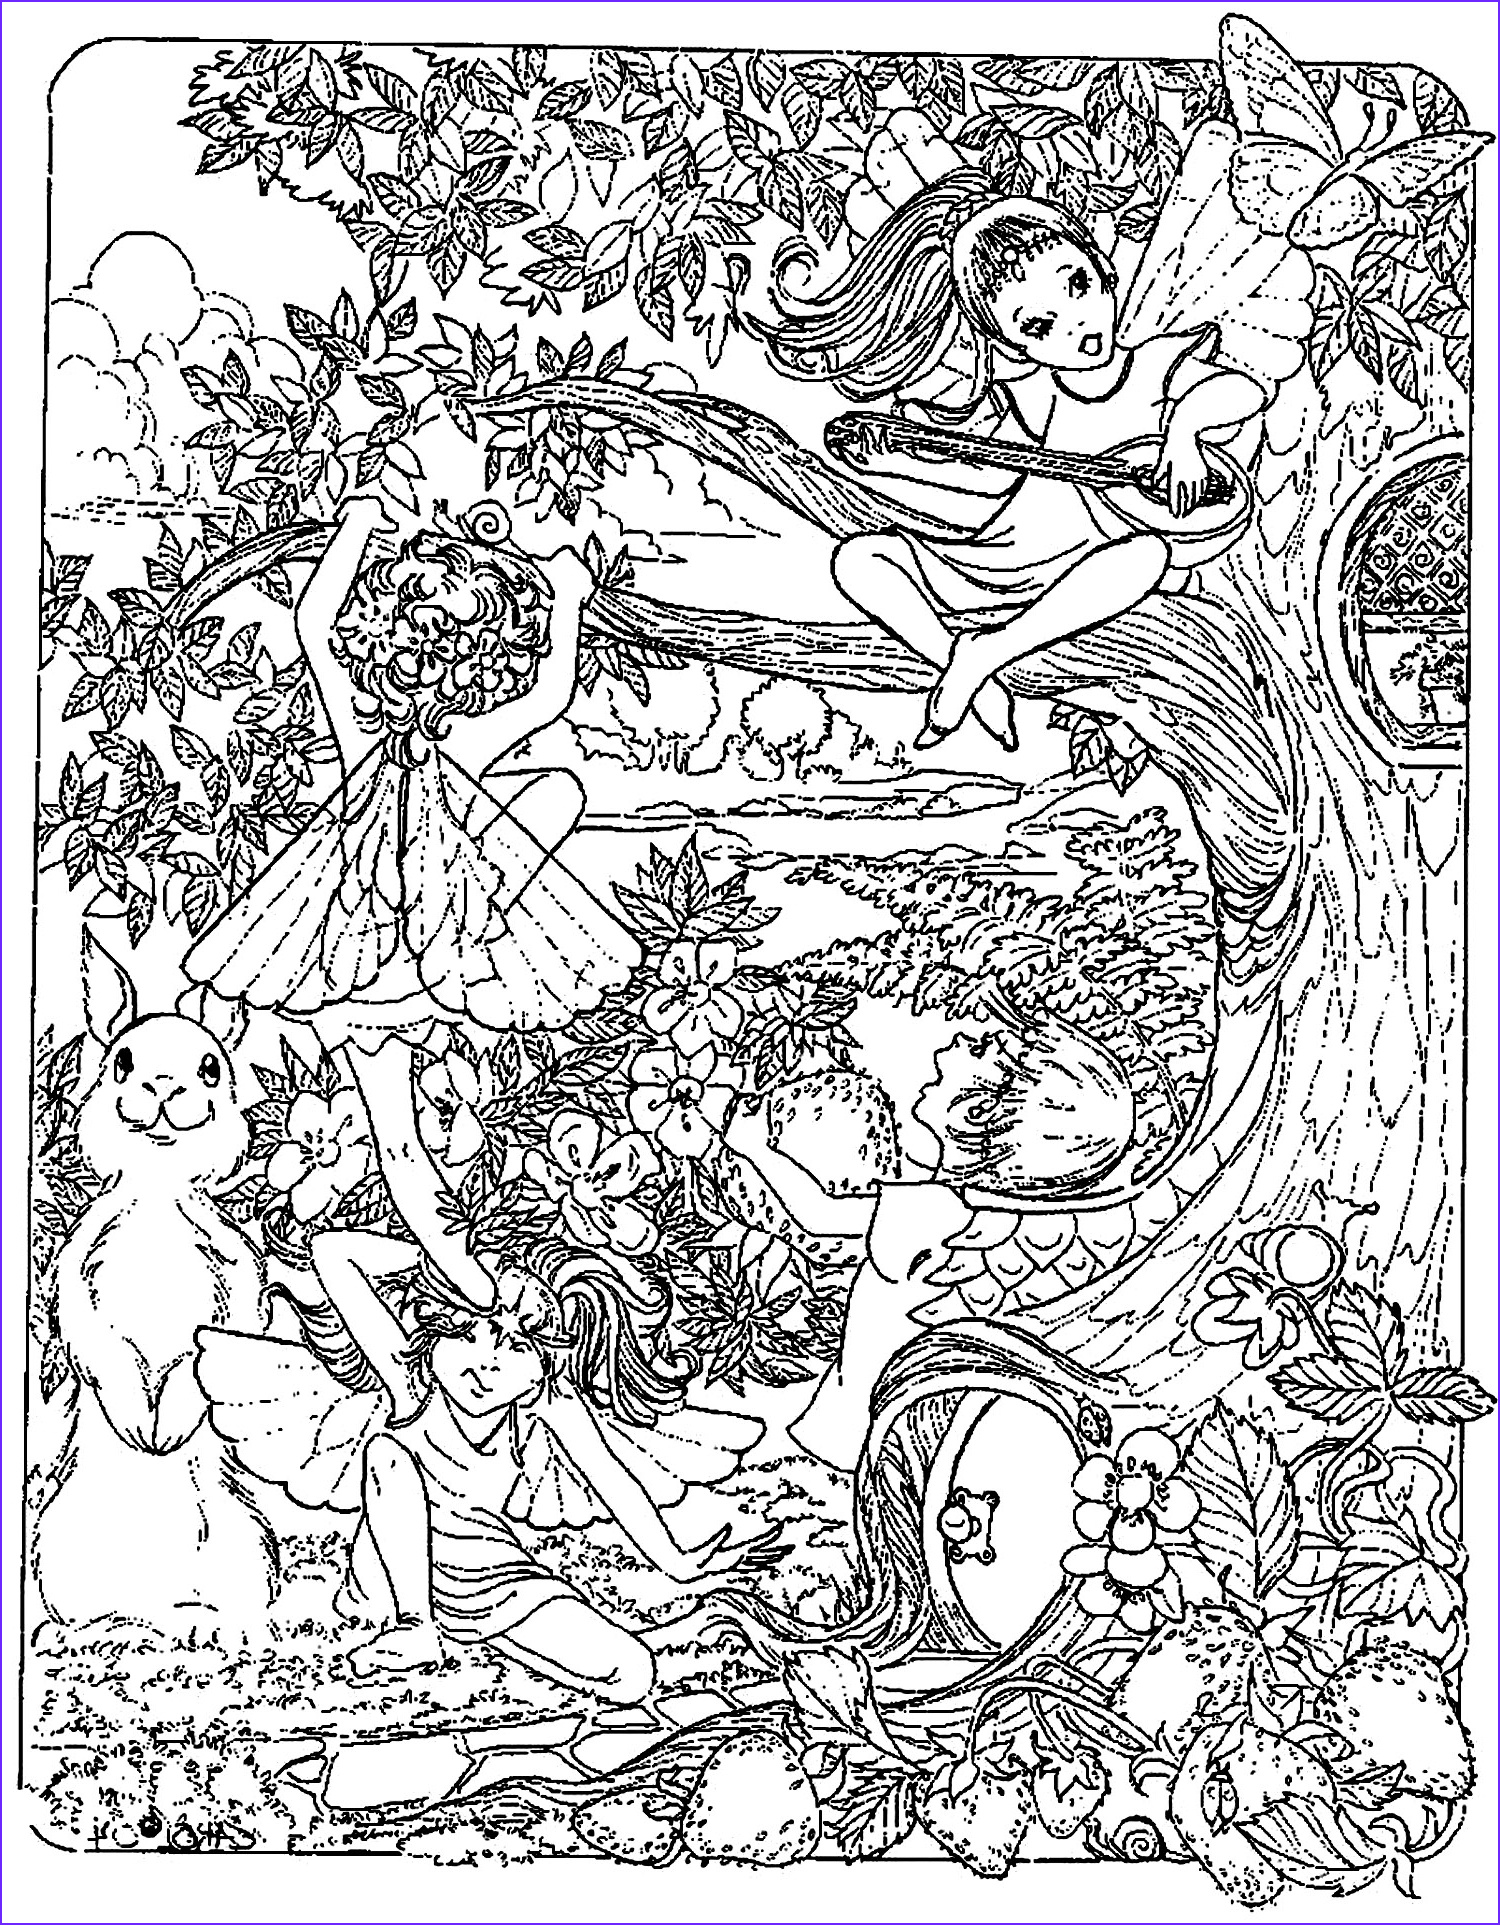 Fantasy Adult Coloring Pages New Stock Fantasy Child Elves Myths & Legends Adult Coloring Pages